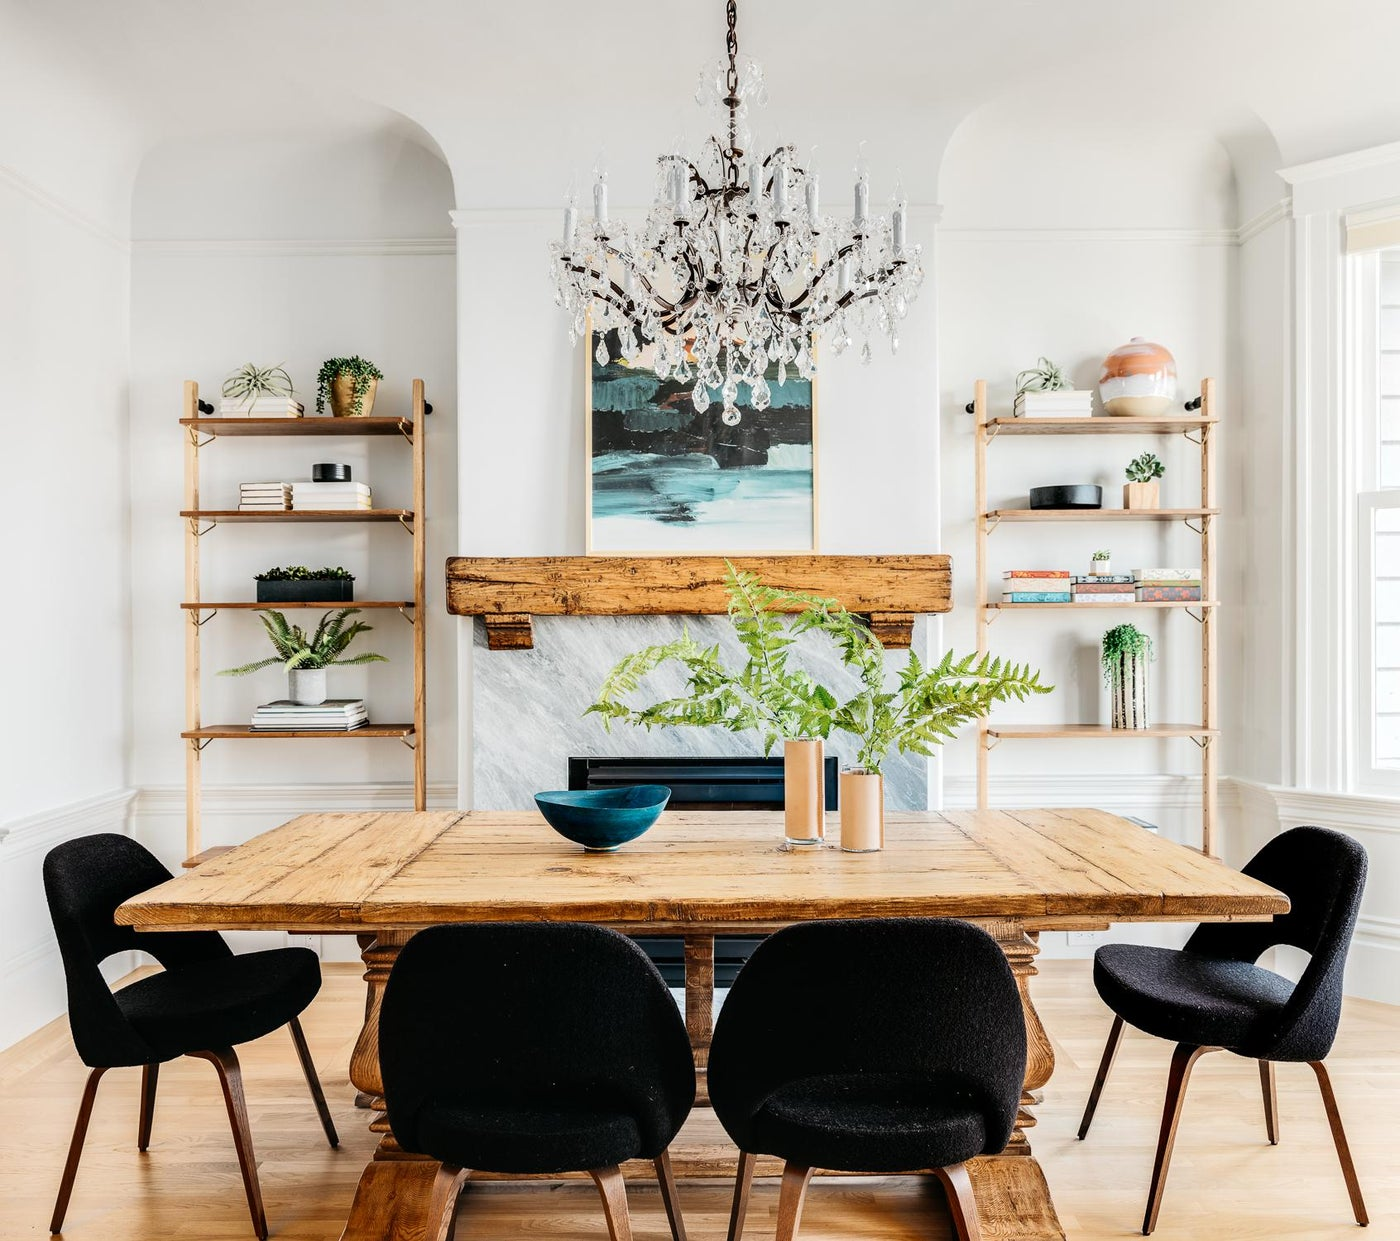 Rustic eclectic dining room with mid-century chairs and crystal chandelier.